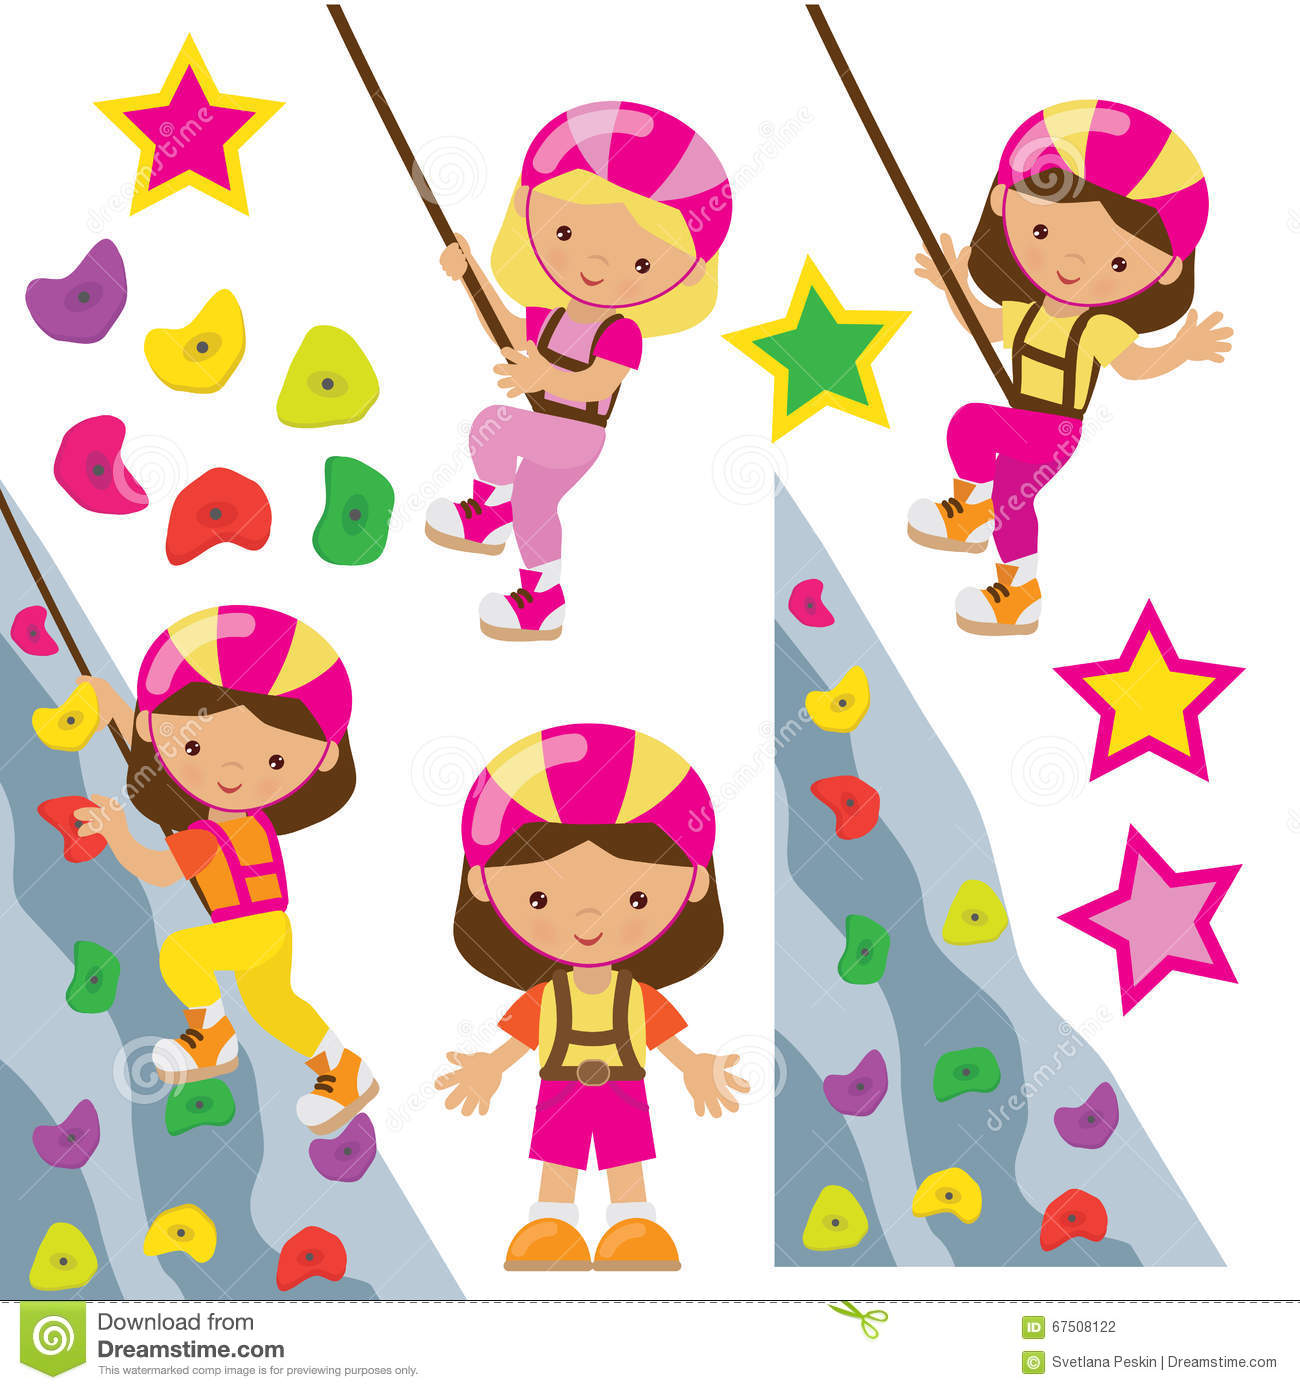 Climbing Wall Vector Illustration Stock Vector ...